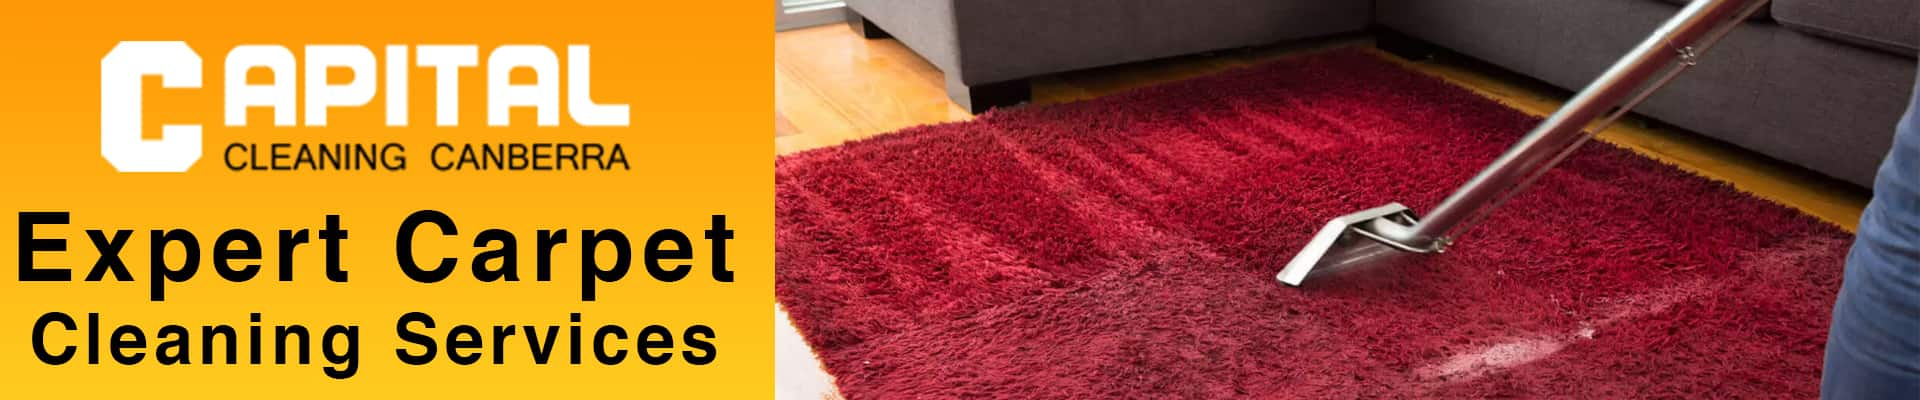 Expert Carpet Cleaning Services Jacka